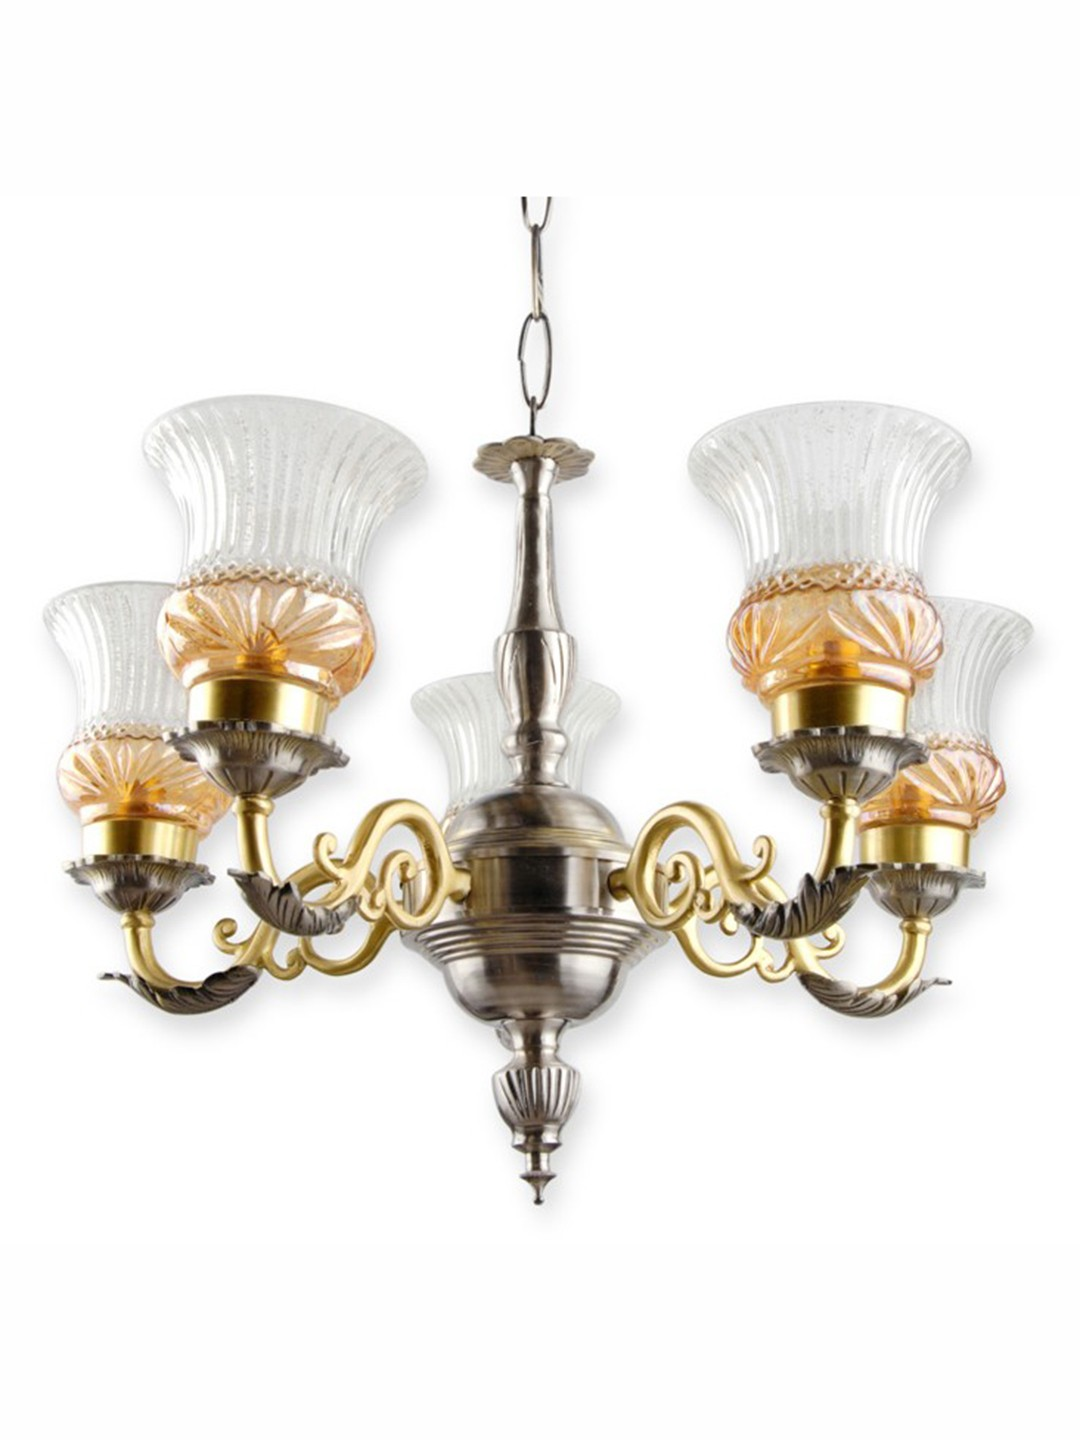 Dual Finish Luster Brass Chandelier